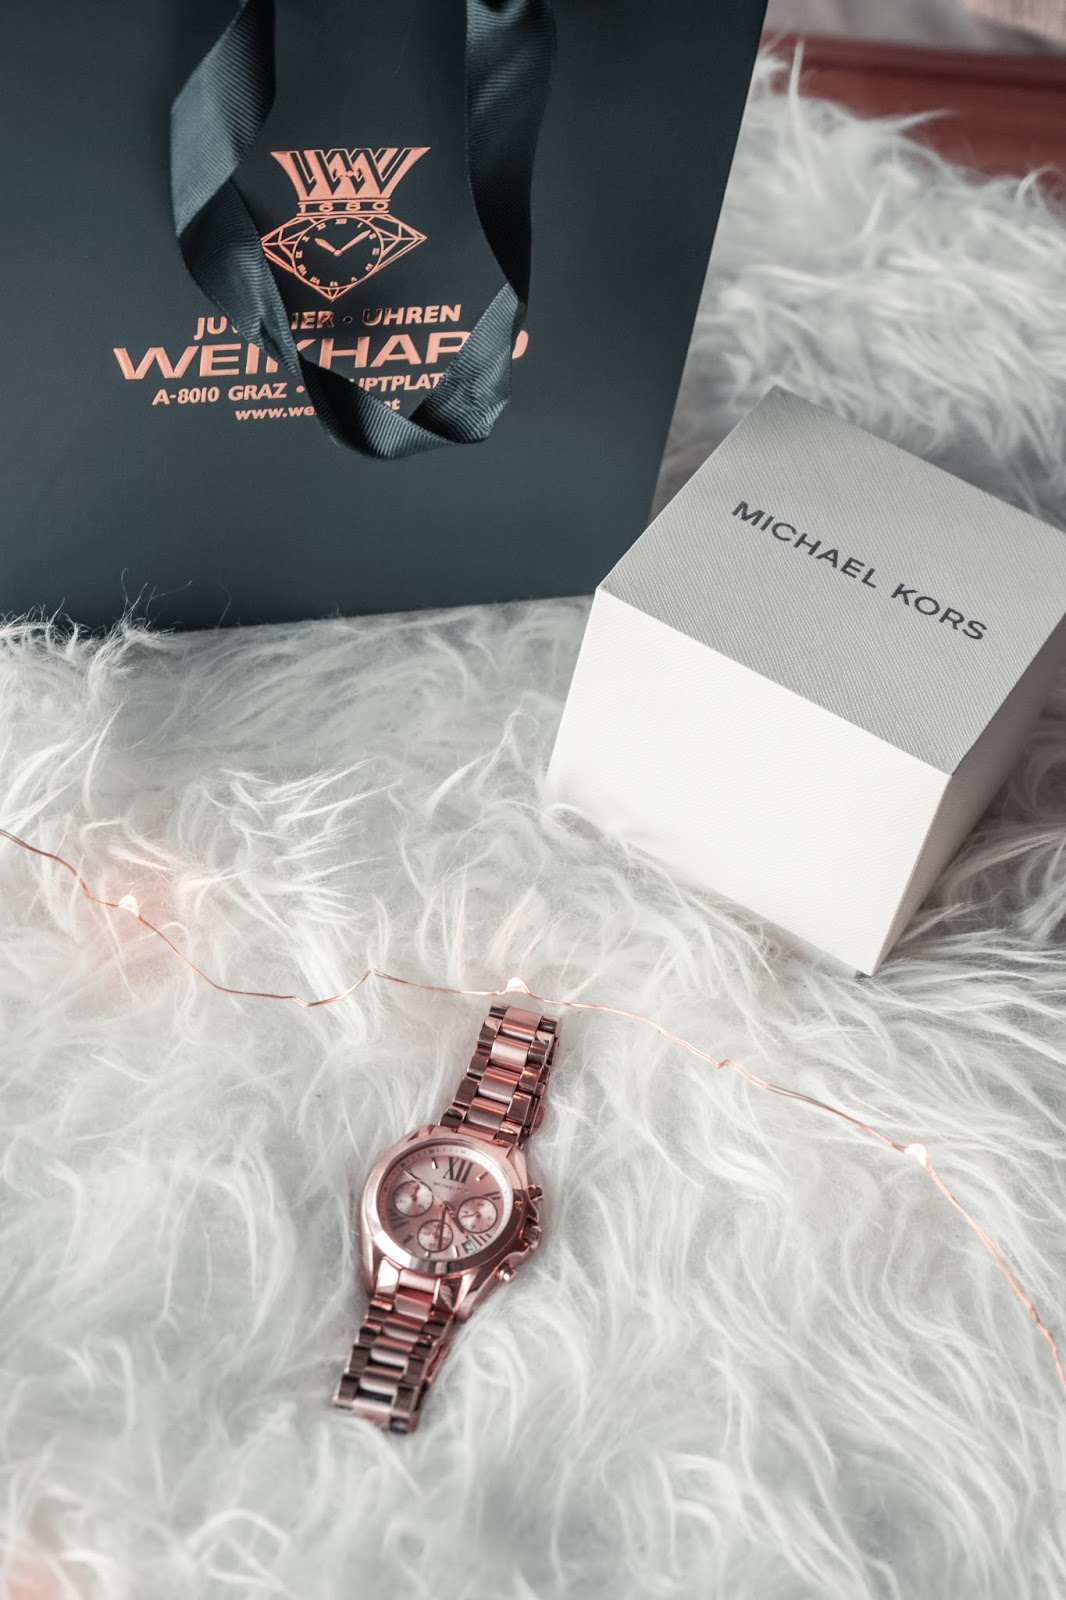 Zegarek Michael Kors bradshaw mini rose gold, blog lifestyle